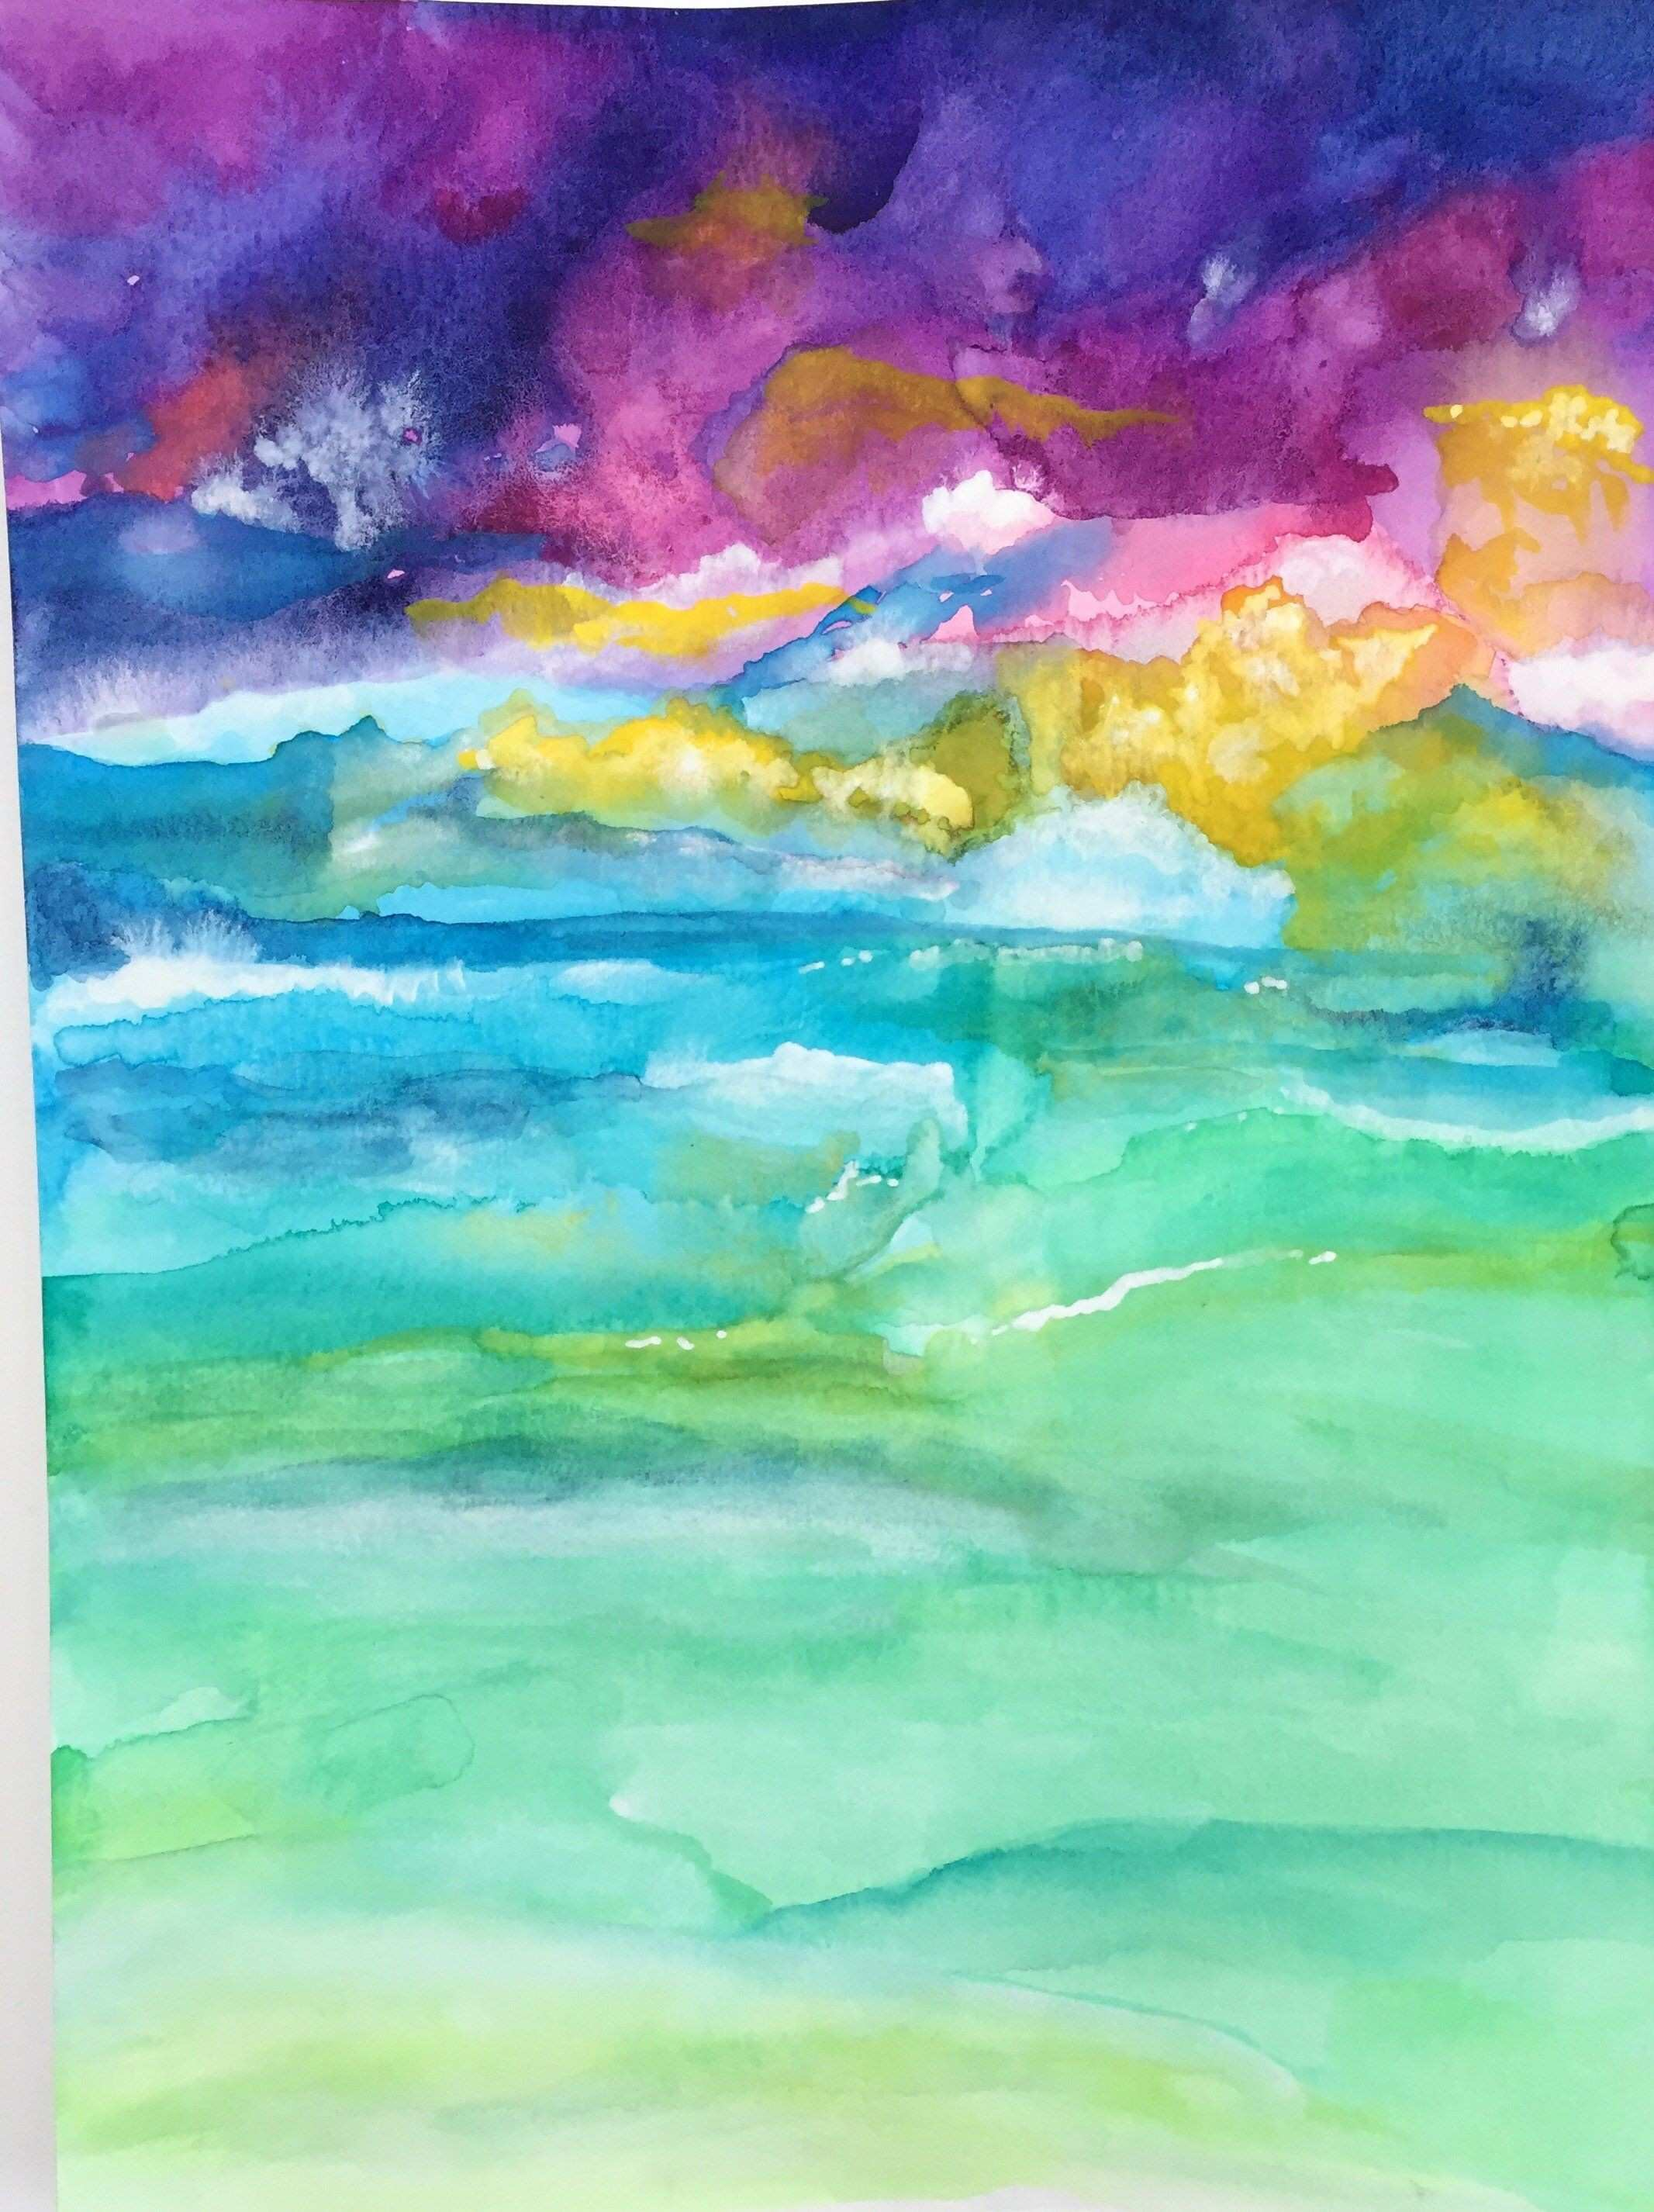 Sea Calms Original Affordable Watercolor Painting Abstract